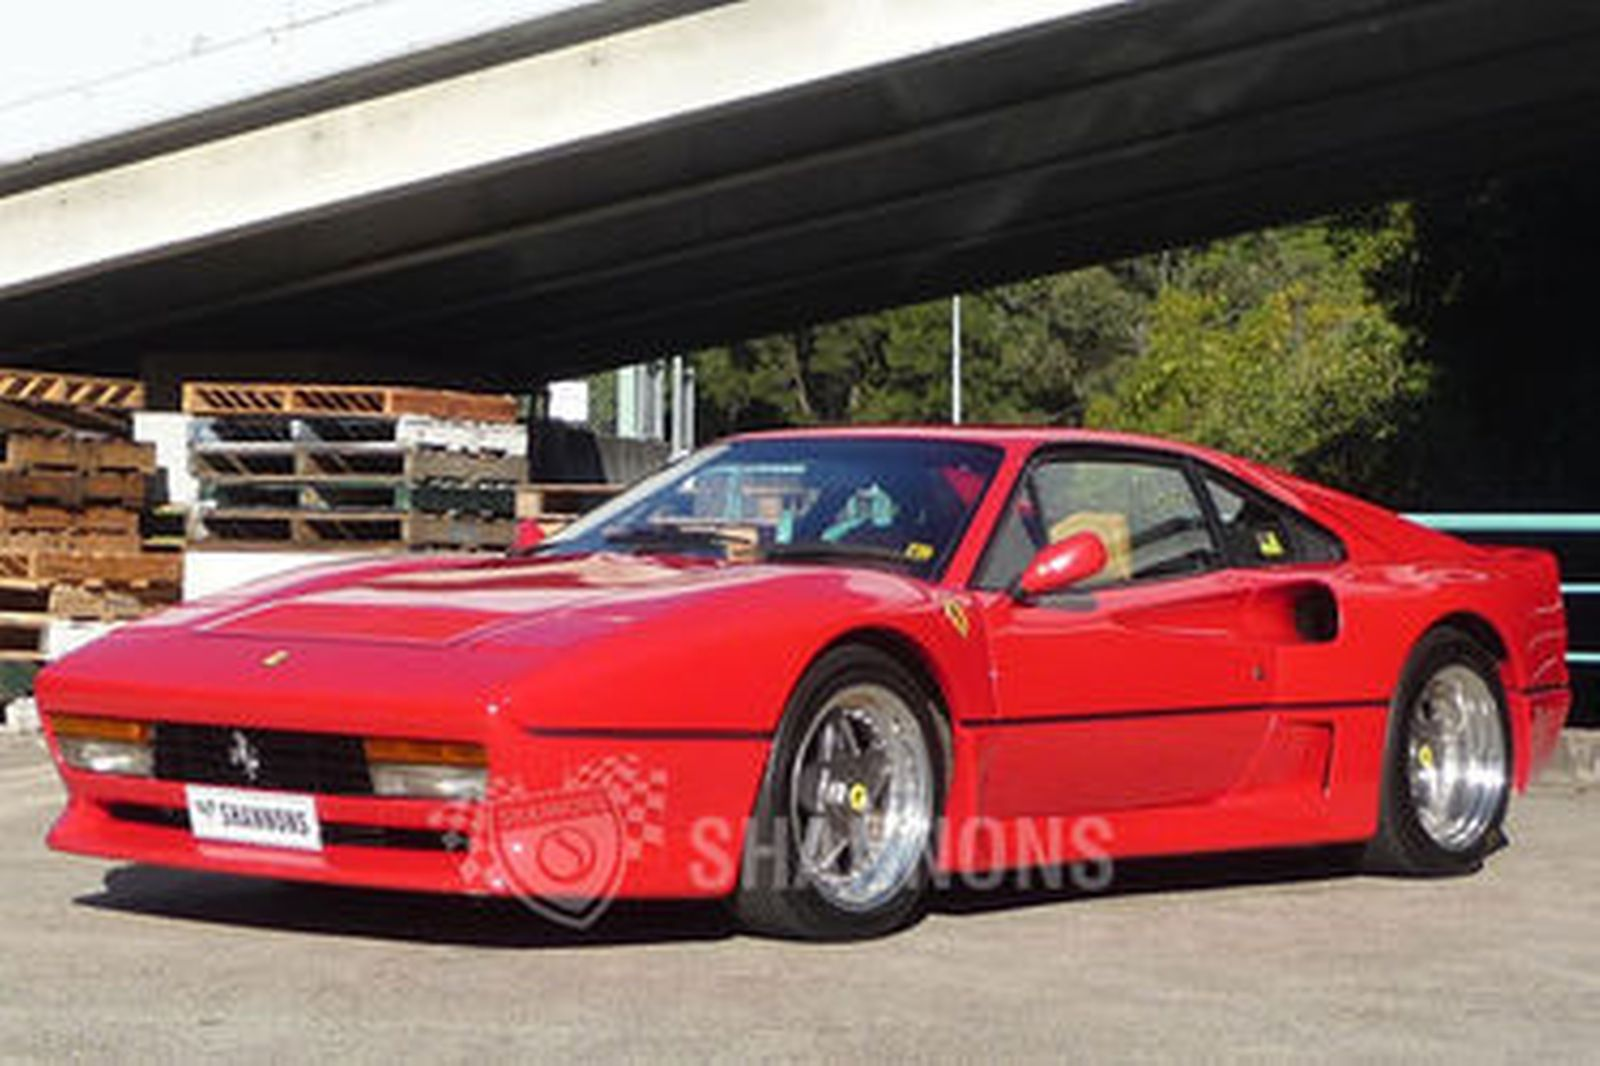 Ferrari 488 Spider together with Owner Shows His Ferrari 308 Gtb in addition 1977 e2 86 921979 Ferrari 308 Gtb together with 2138120325198303503 further 2014hsv02clubsportr8svgenf02. on ferrari 308 gts performance